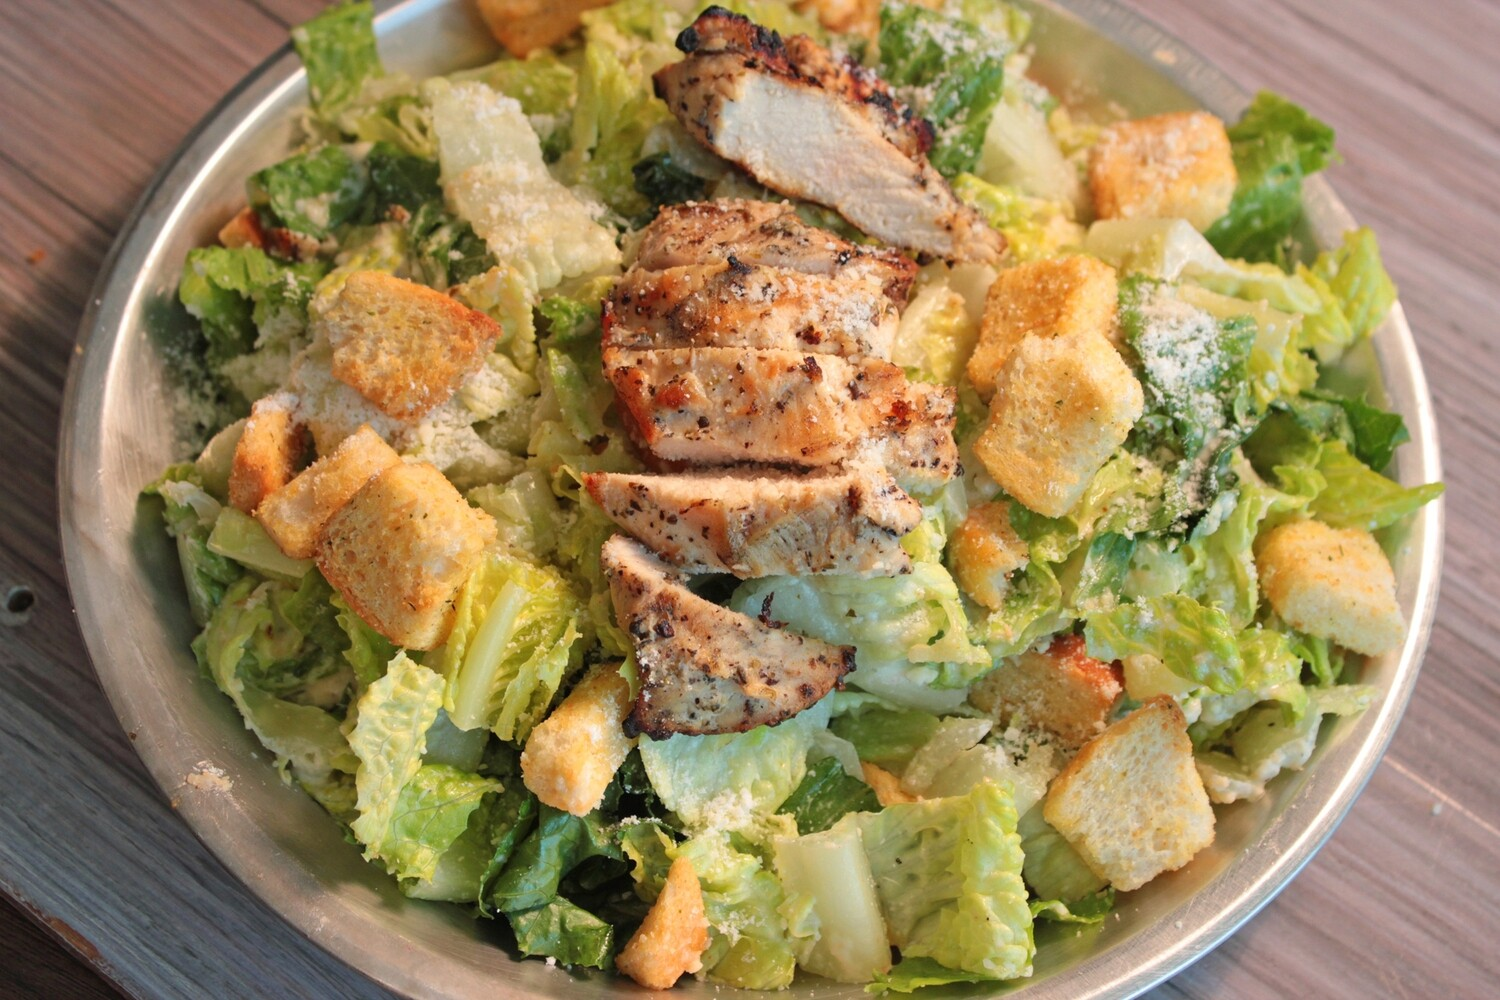 Fresh Caesar Salad- Romaine lettuce, shaved Parmesan, croutons, and Caesar dressing (contains anchovies)